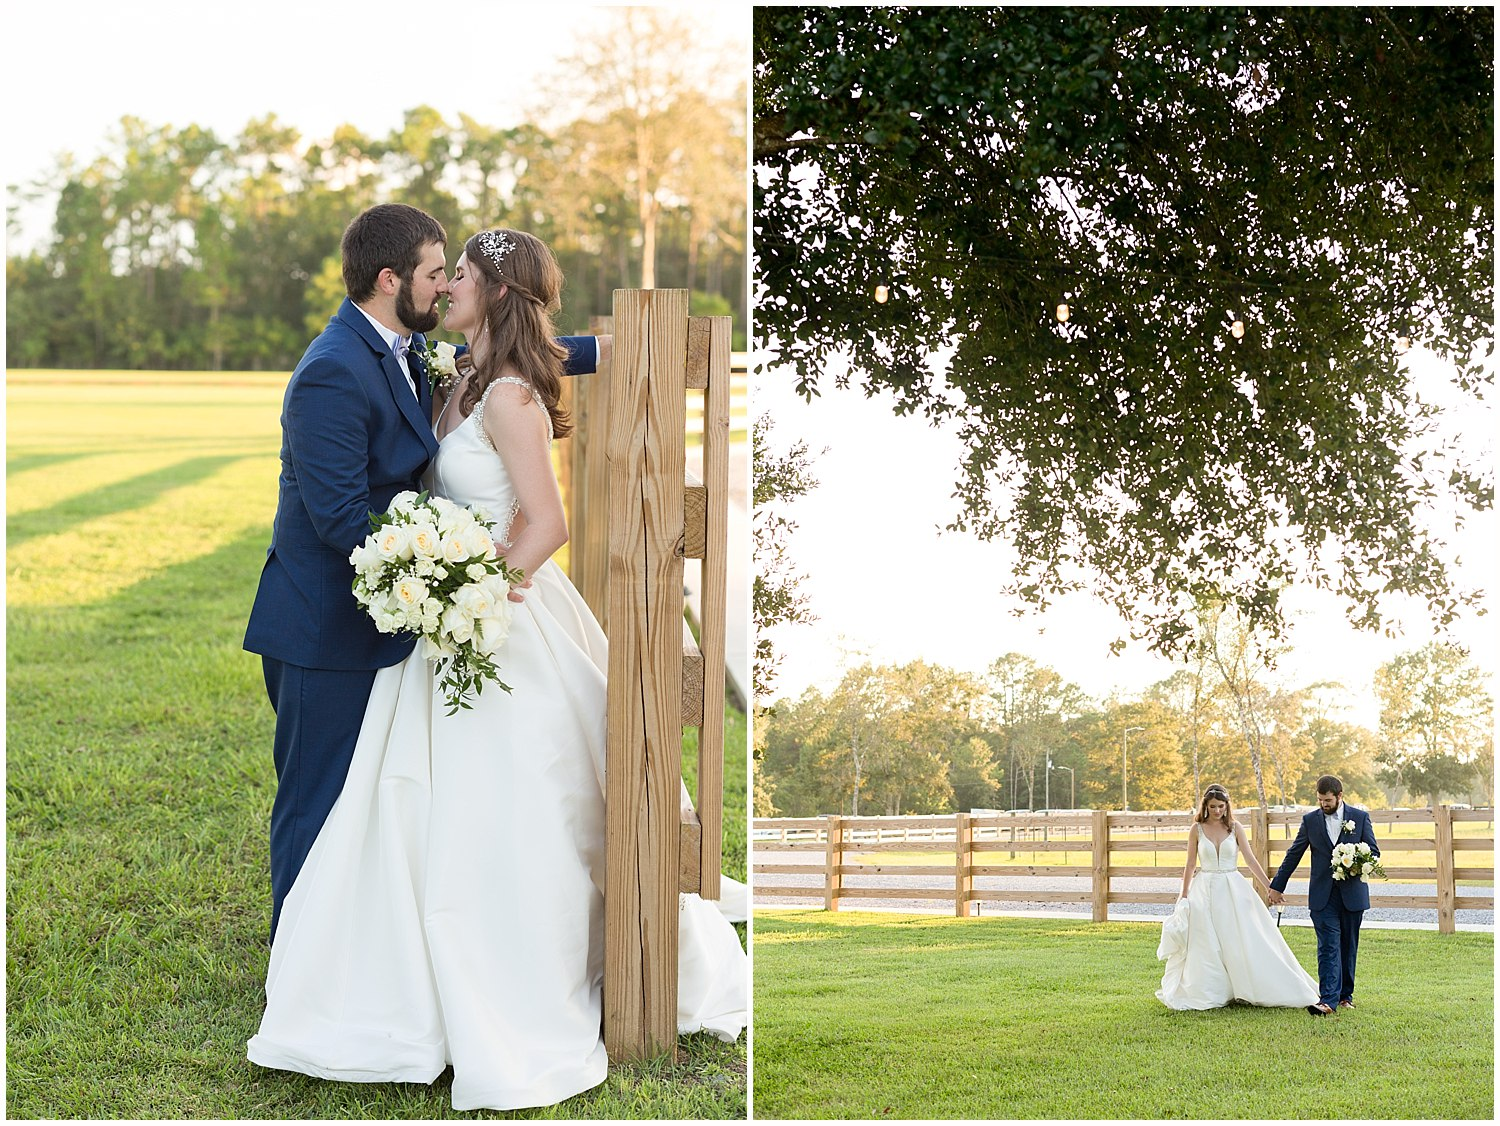 outdoor wedding photos in Kiln, MS